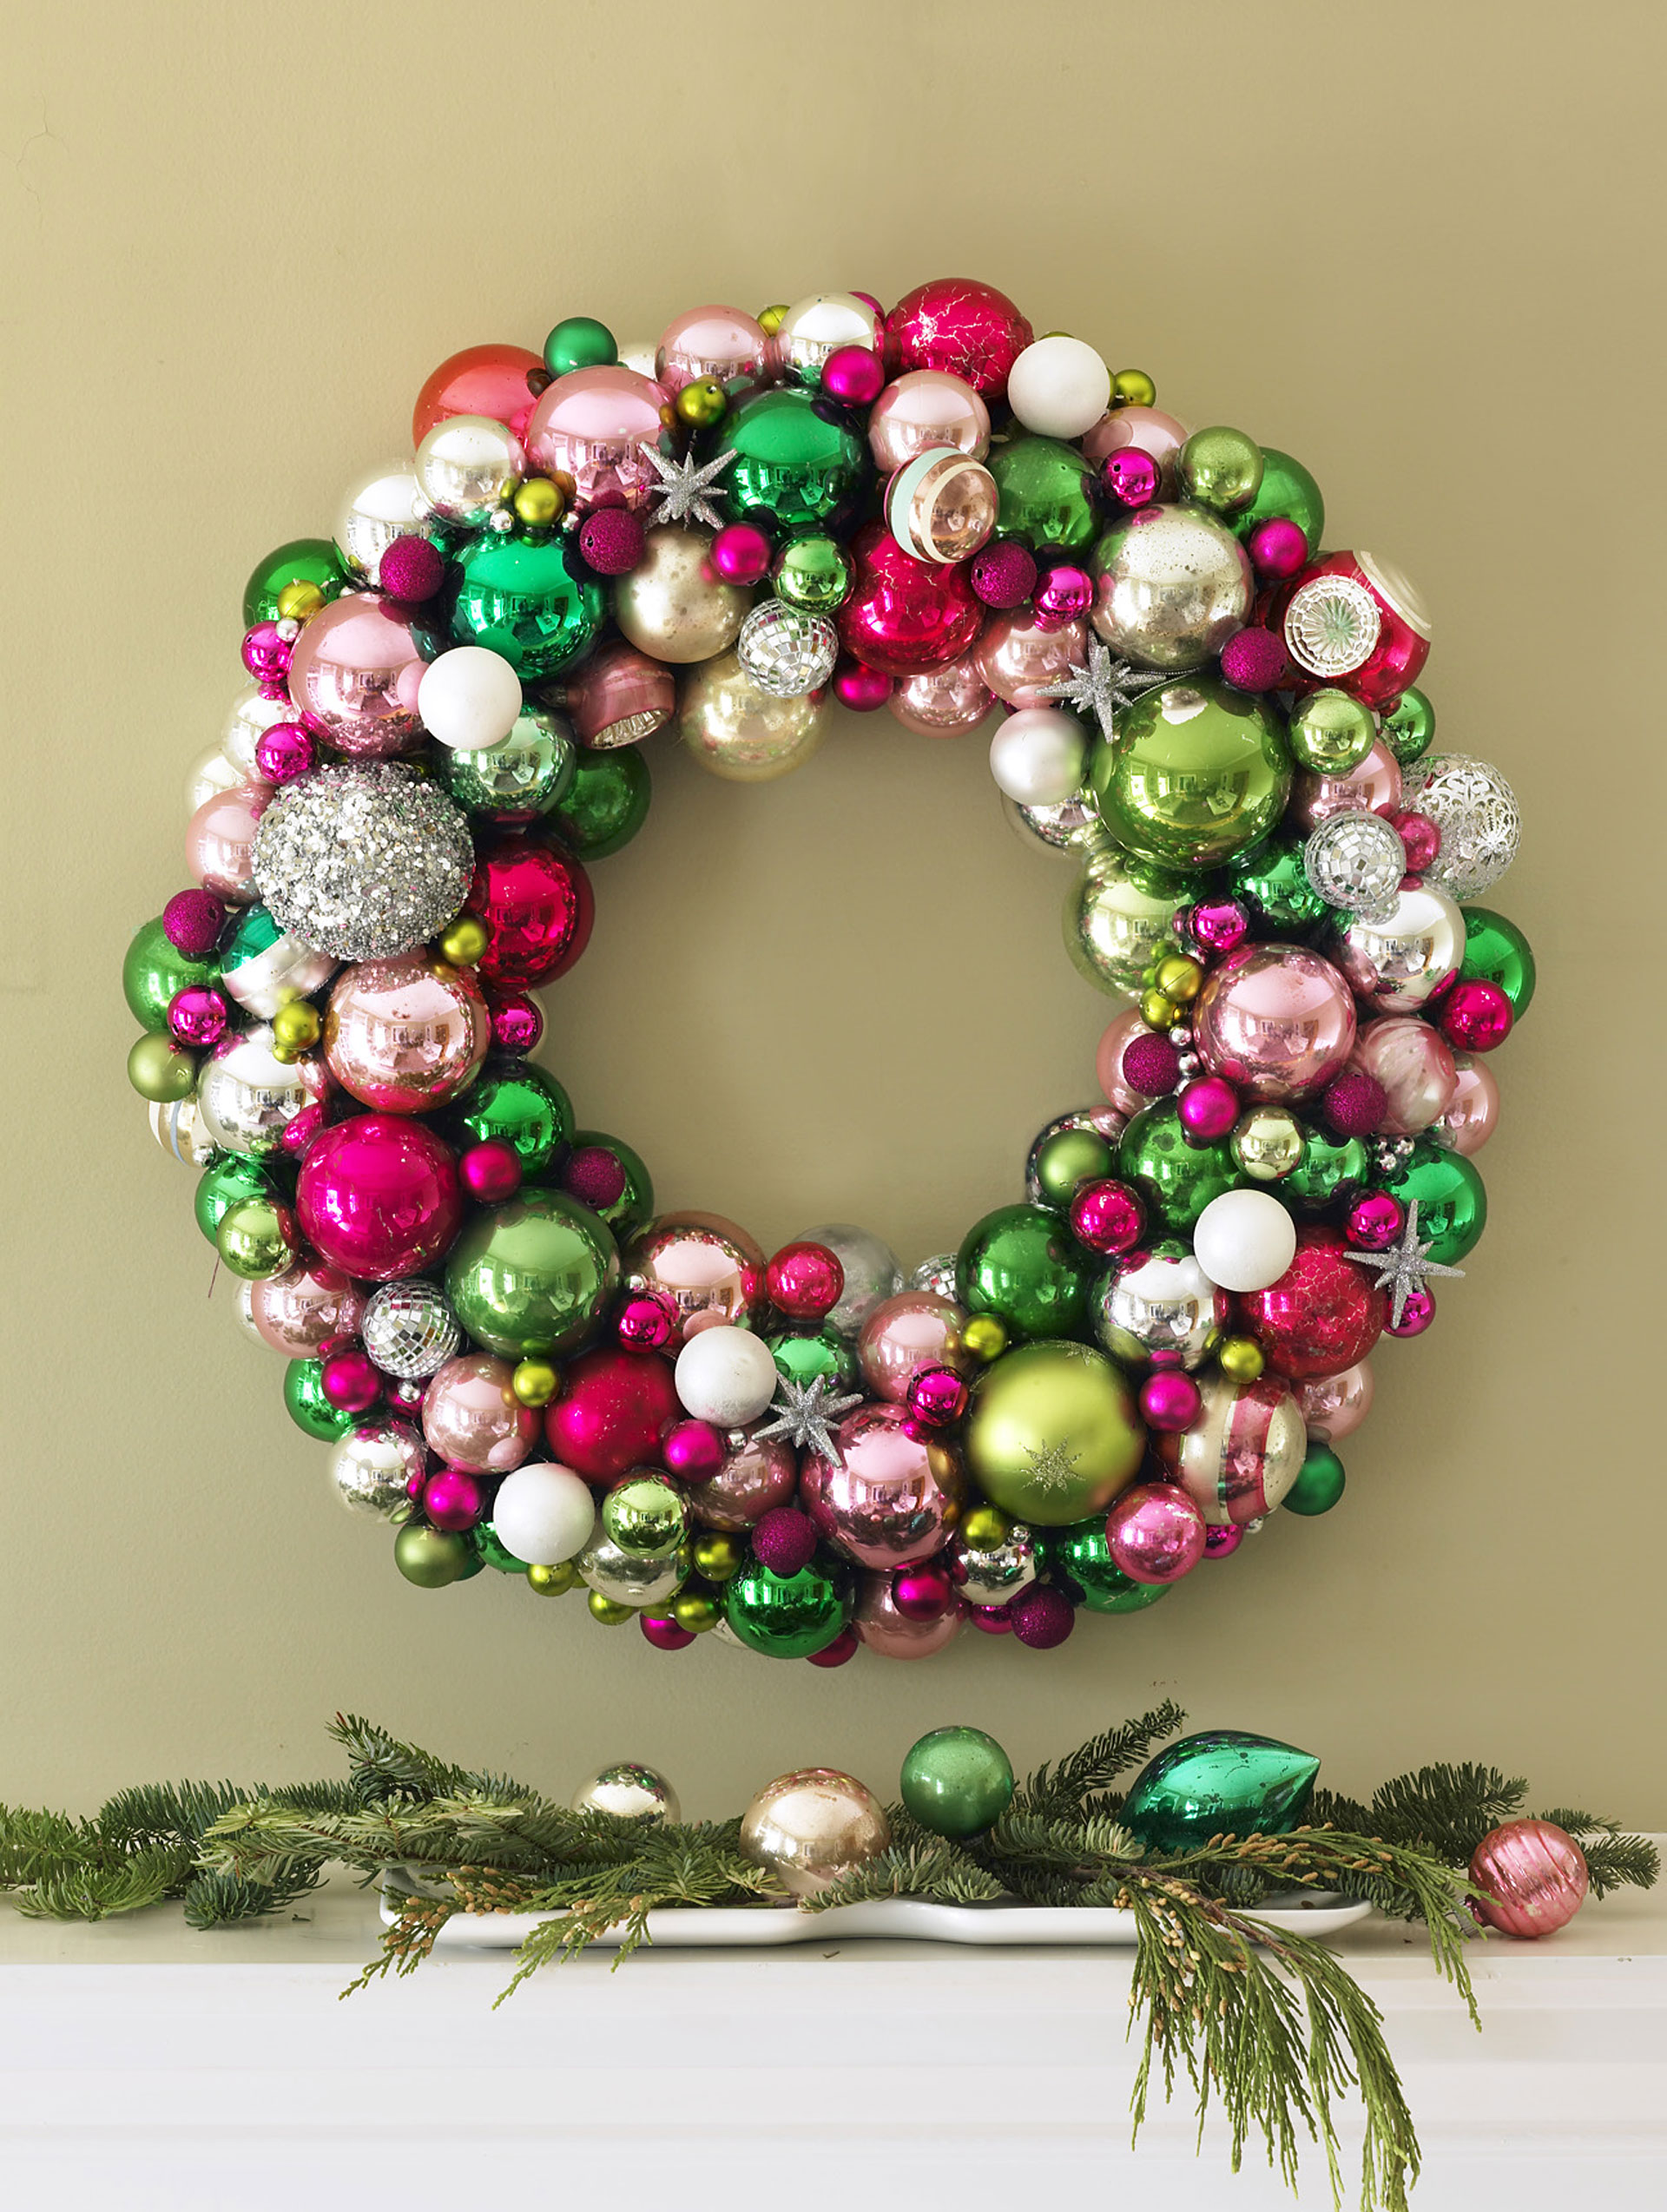 Weihnachtskranz Basteln 55 Diy Christmas Wreaths How To Make A Holiday Wreath Craft